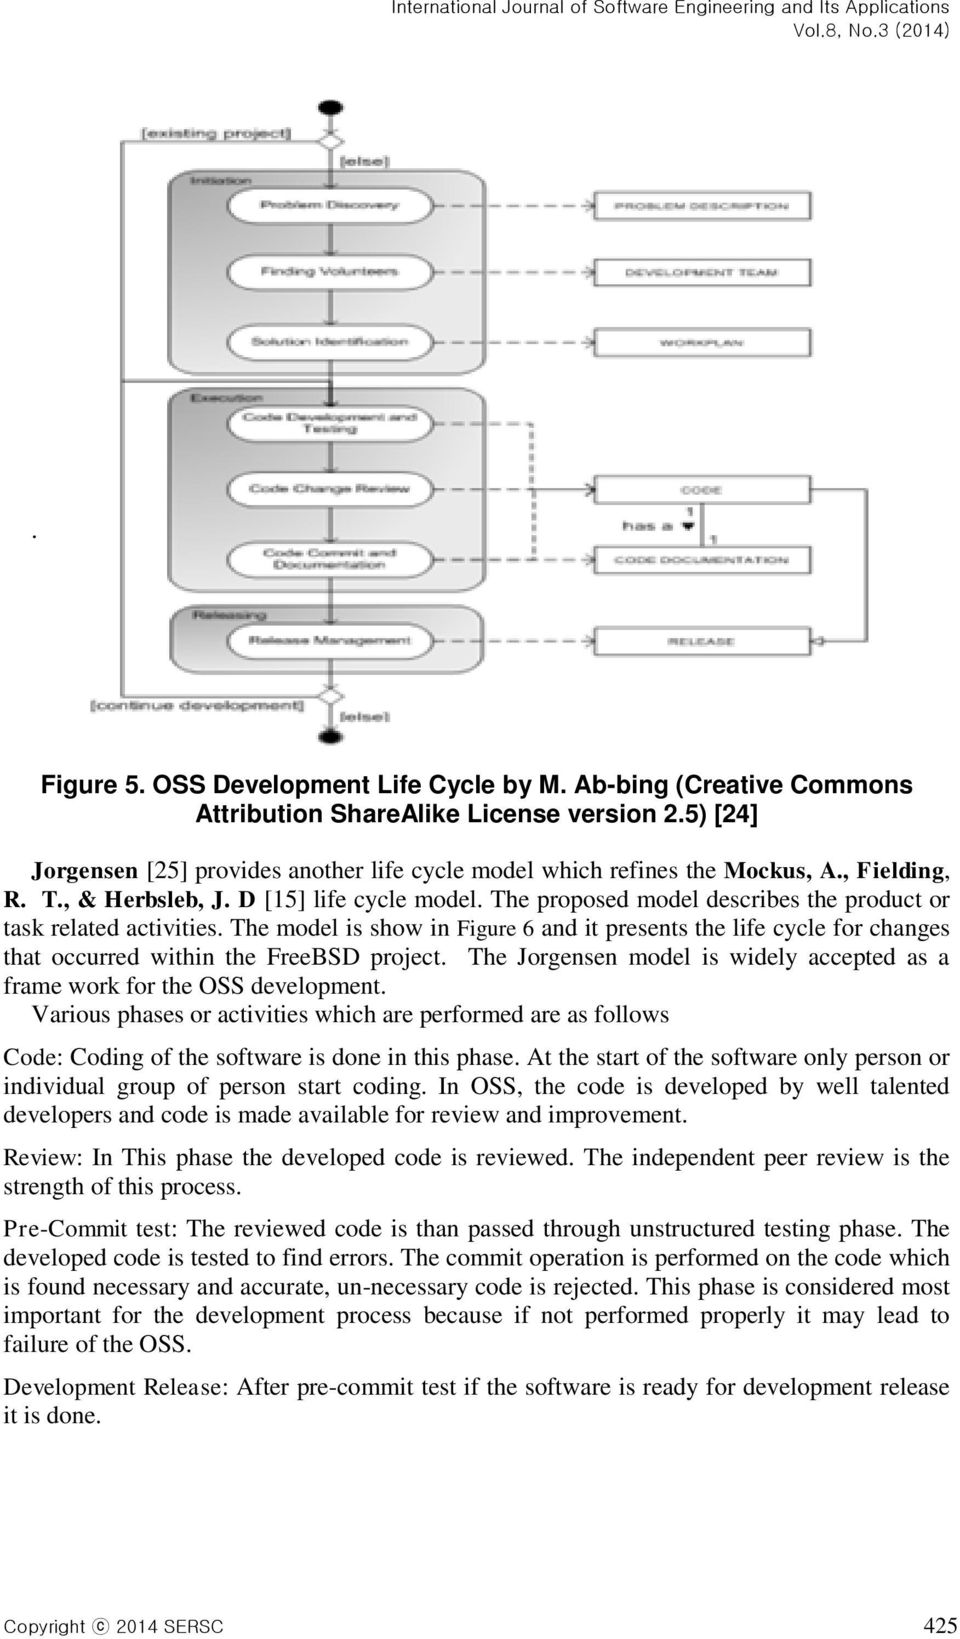 The model is show in Figure 6 and it presents the life cycle for changes that occurred within the FreeBSD project. The Jorgensen model is widely accepted as a frame work for the OSS development.